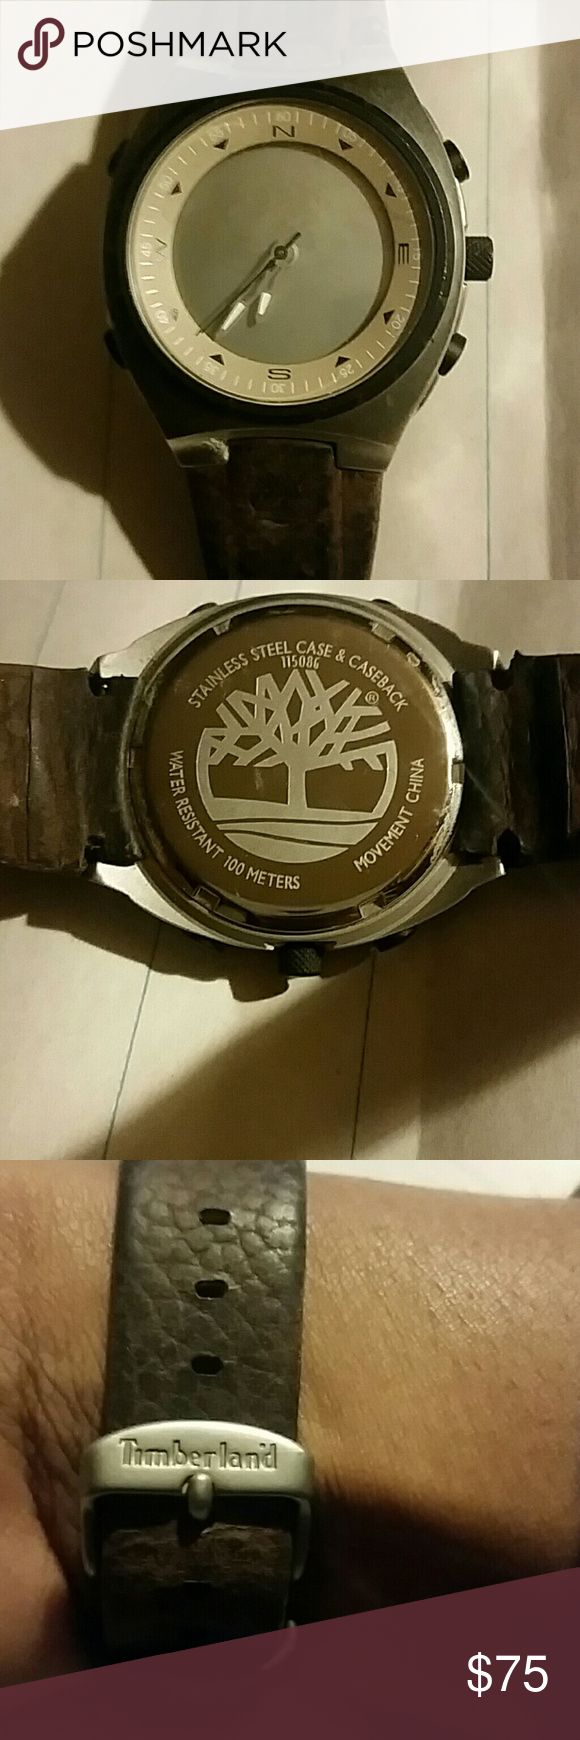 Men's Timberland Watch Brown, leather band  Metal face Compass face Battery needs to be replaced Good condition Timberland Accessories Watches